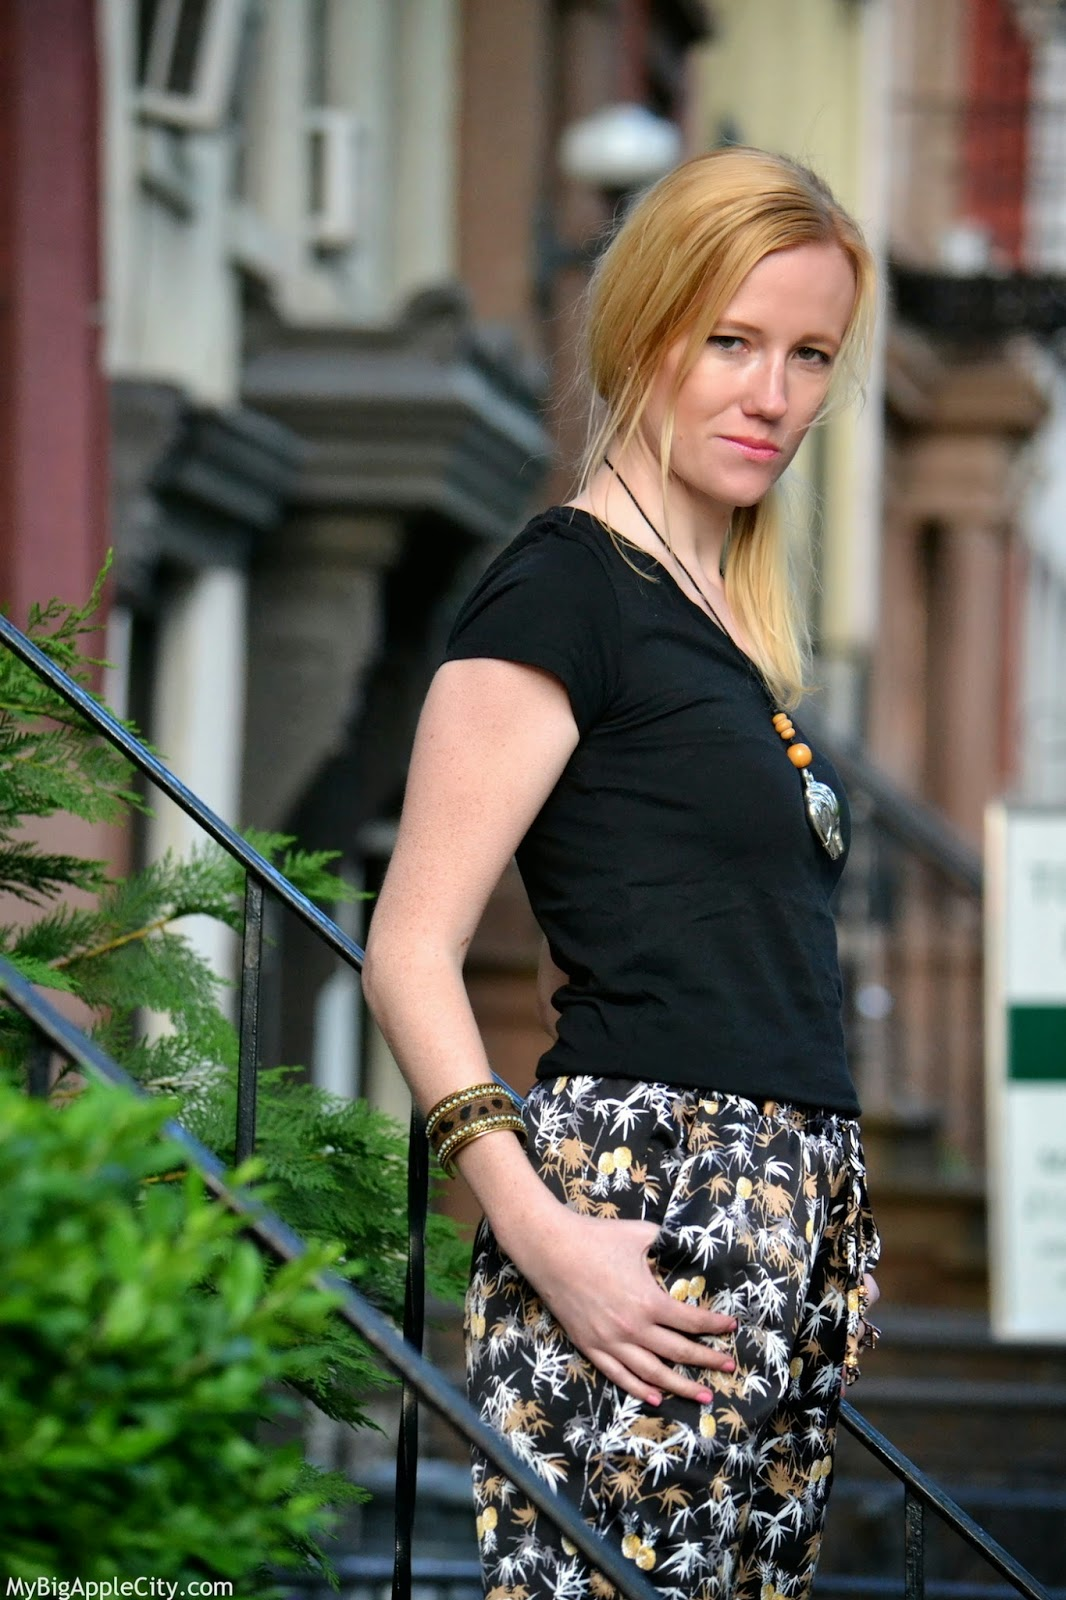 ootd-style-blogger-fashion-streetstyle-nyc